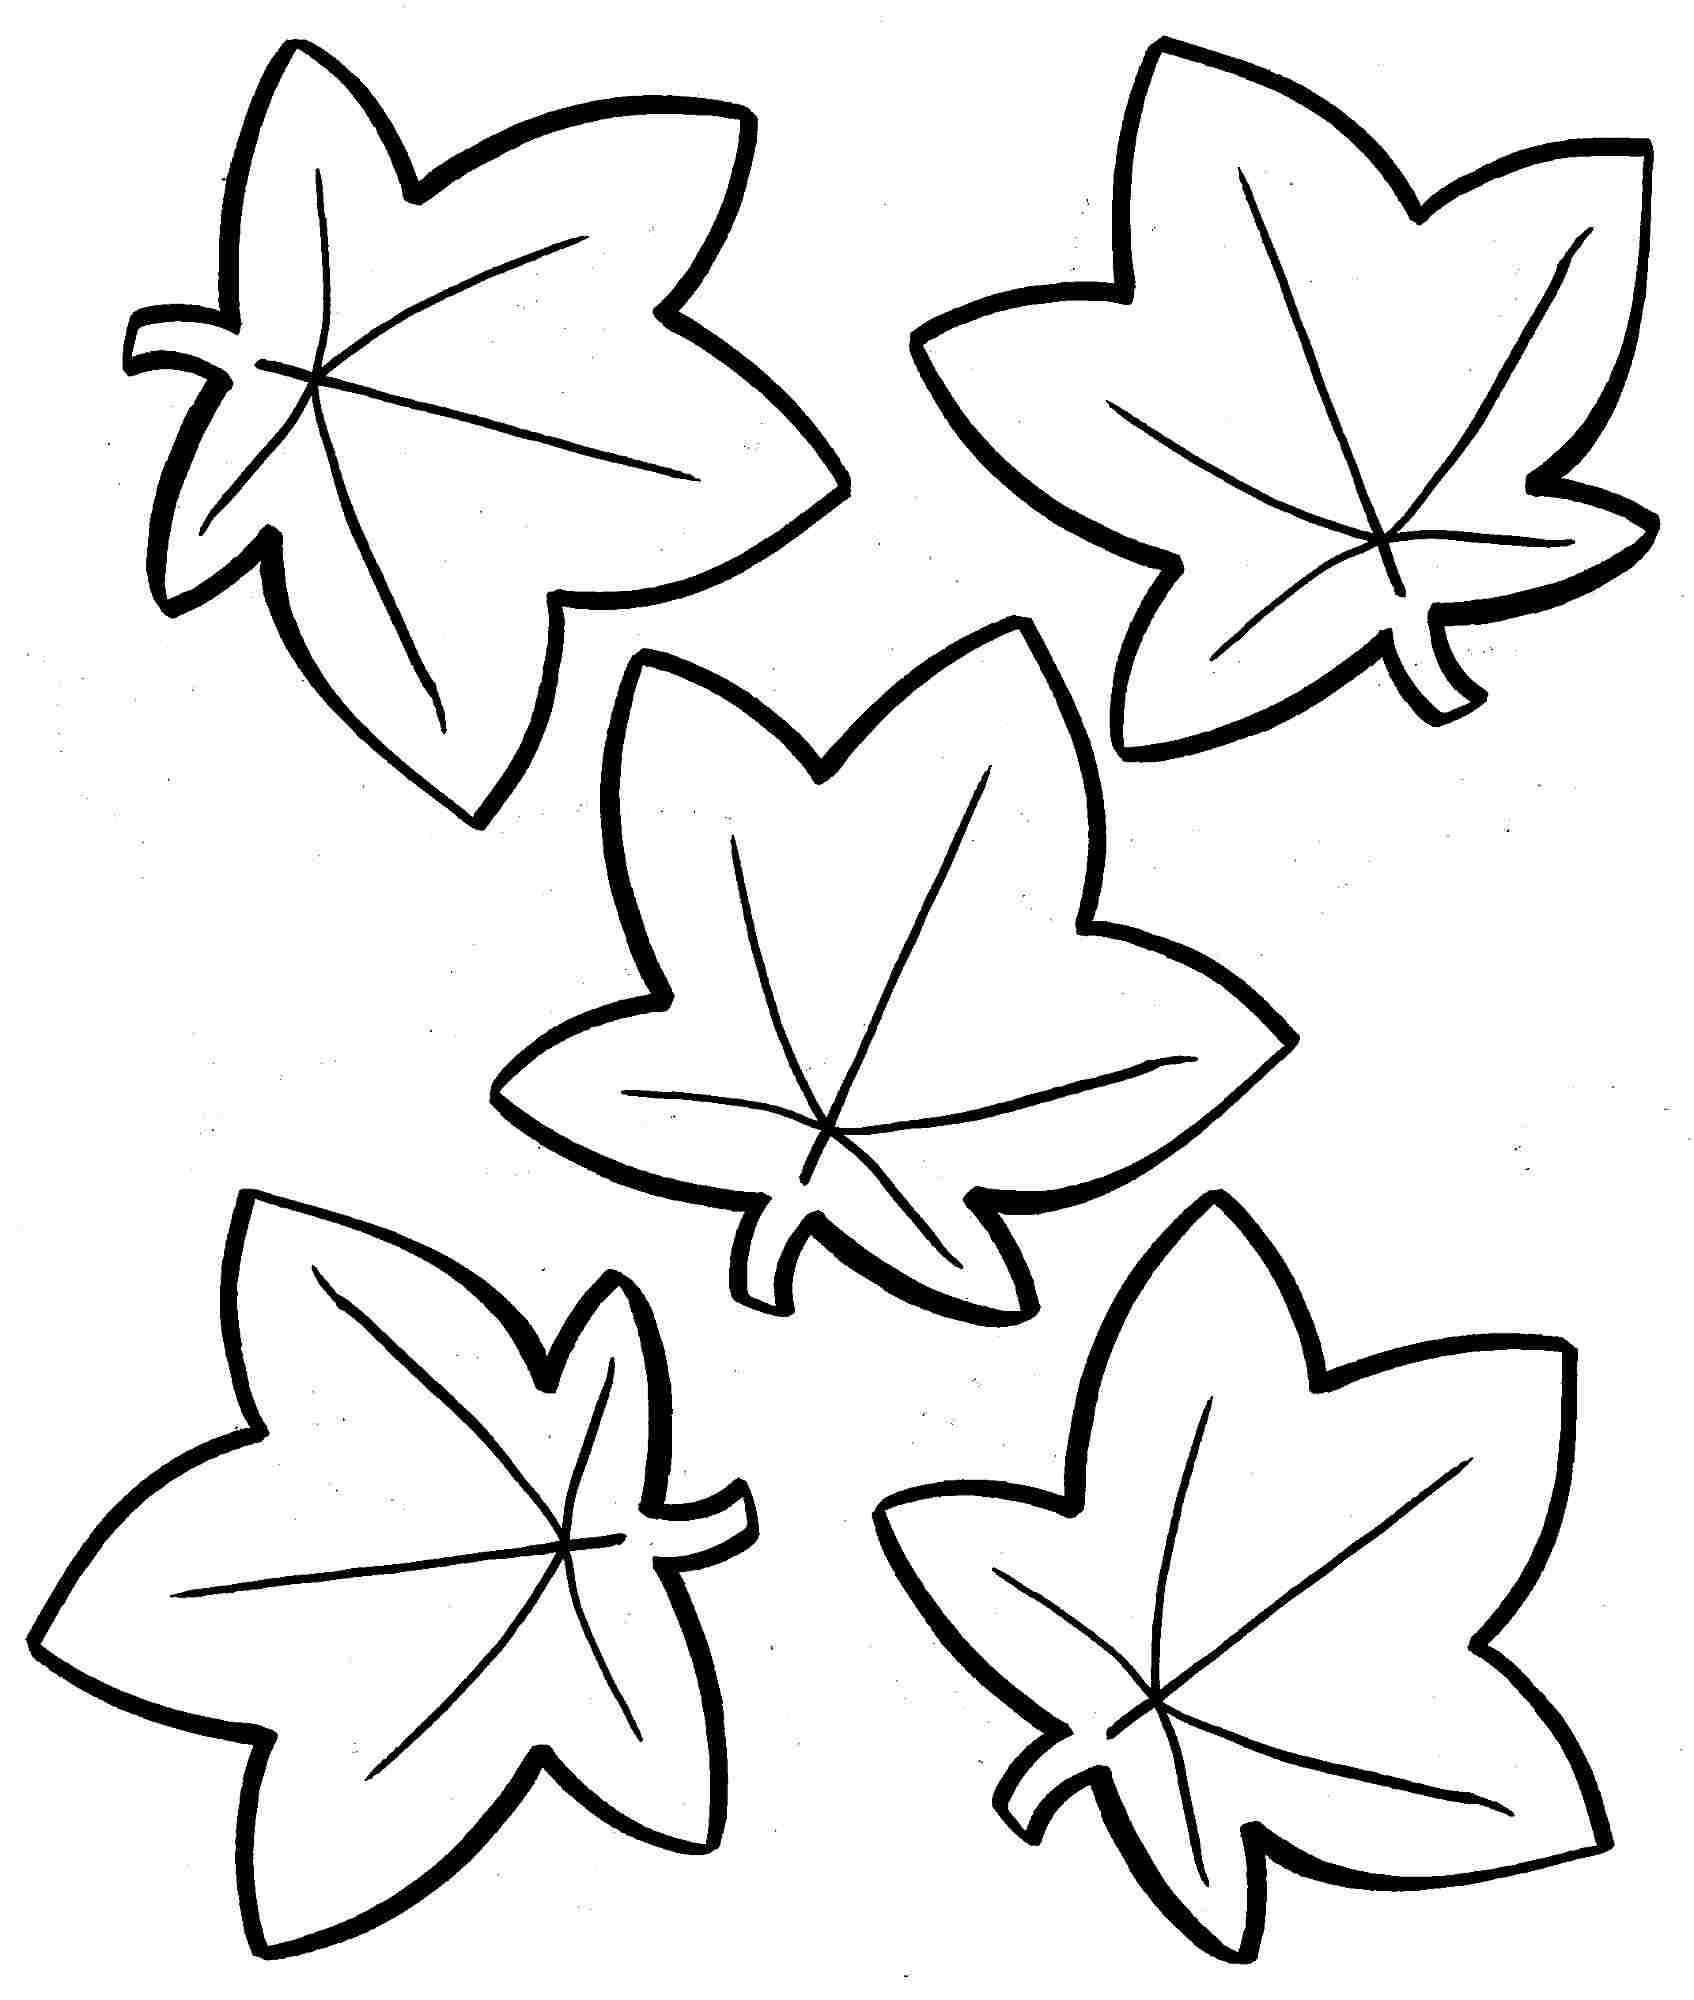 Coloring Book World: Autumn Leaves Coloring Pages. - Free Printable Fall Leaves Coloring Pages